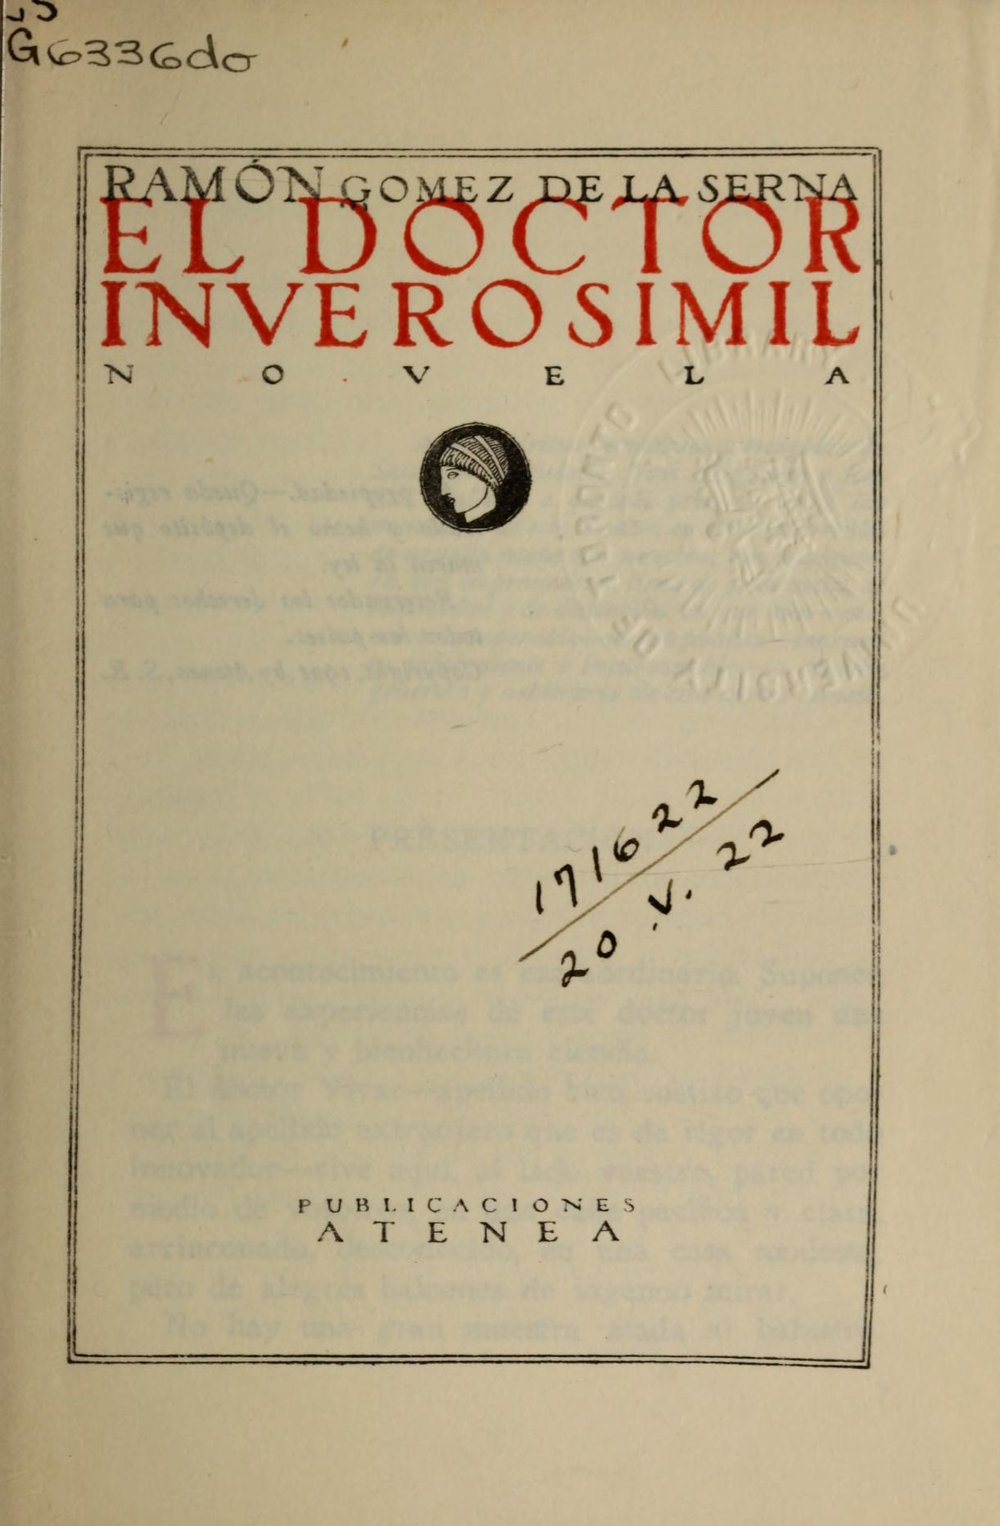 The title page of a library copy digitized at  archive.org .